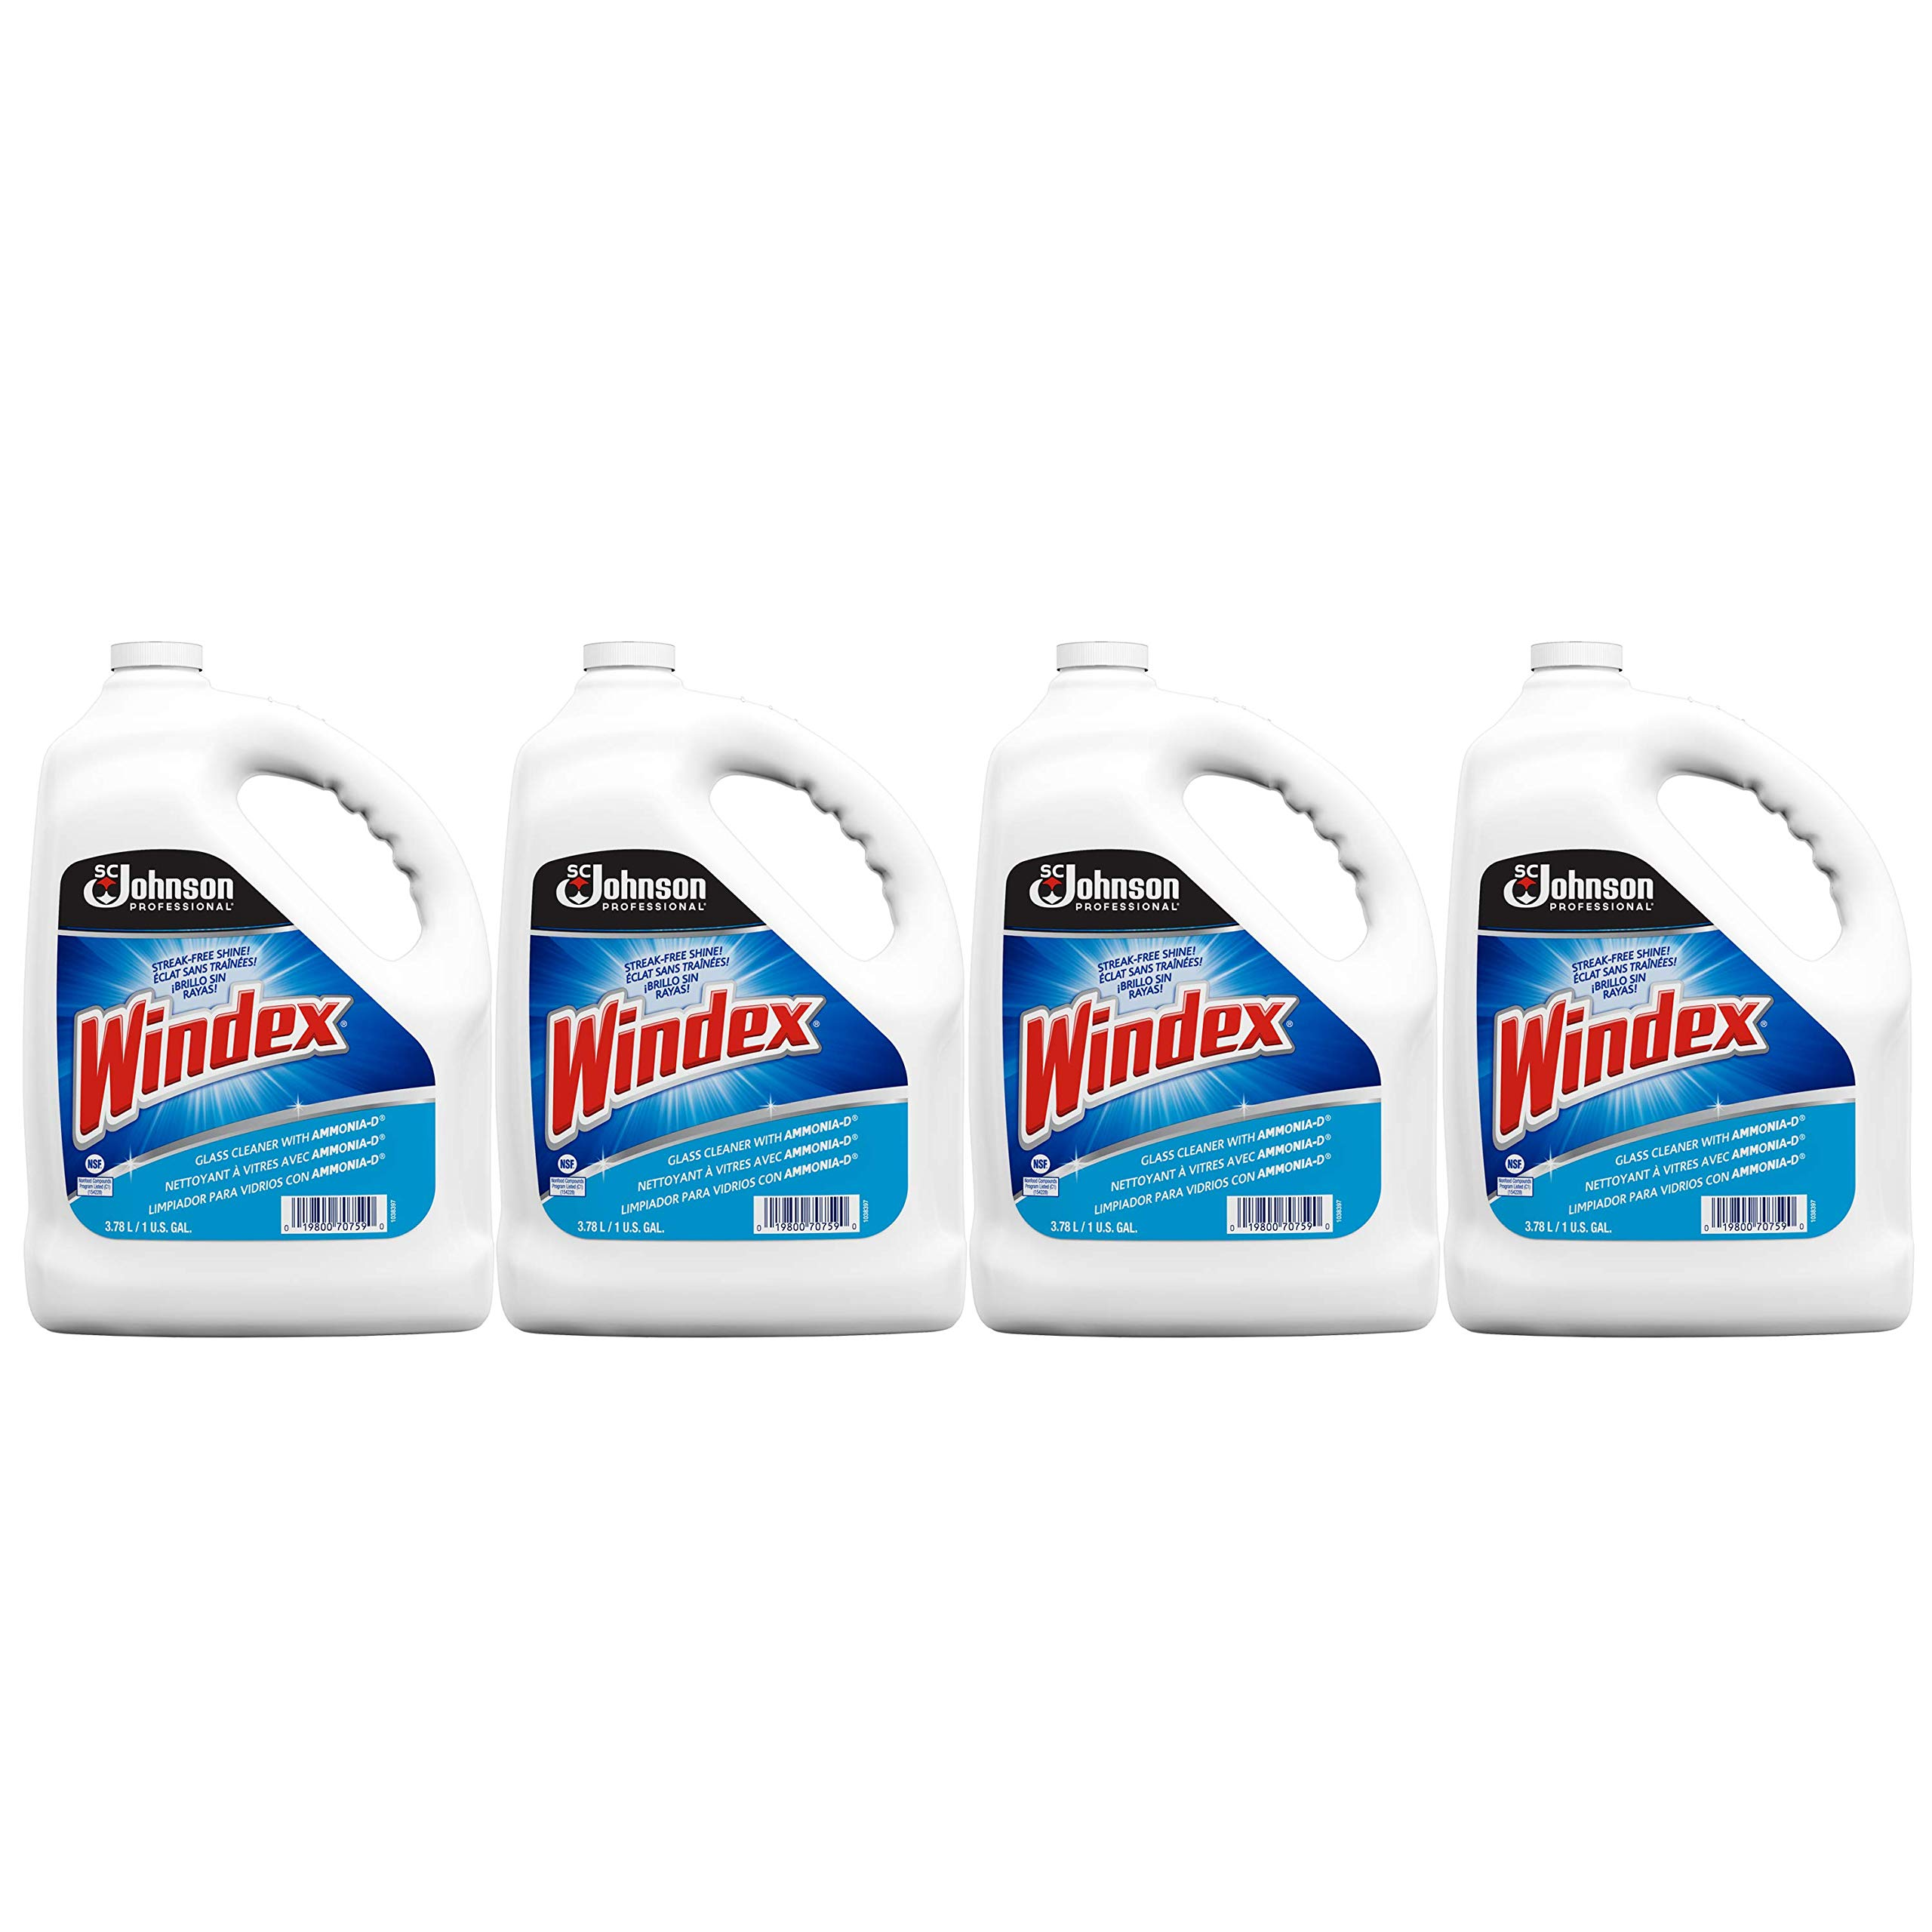 Windex Professional Glass & Surface Cleaner with Ammonia-D, 1 Gallon (Pack of 4) by SC Johnson Professional